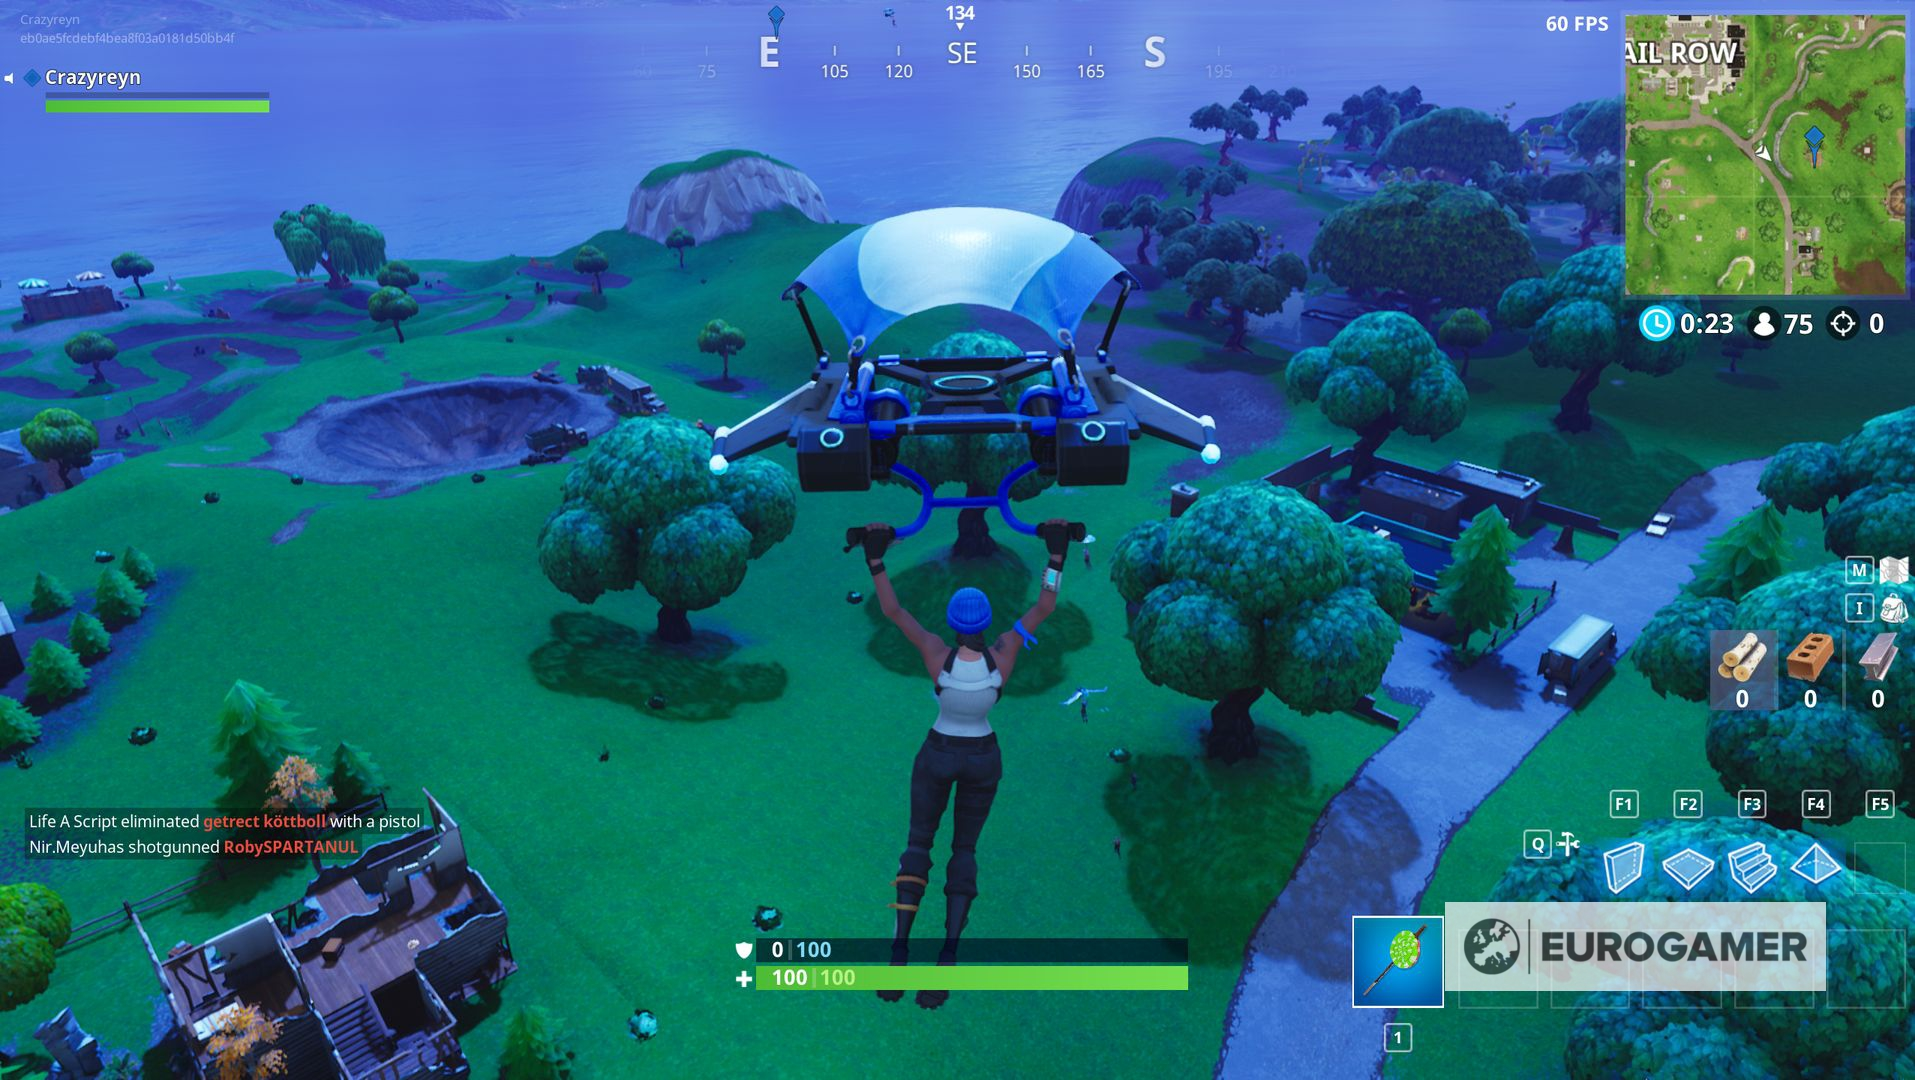 fortnite_bear_crater_refrigerator_shipment_2